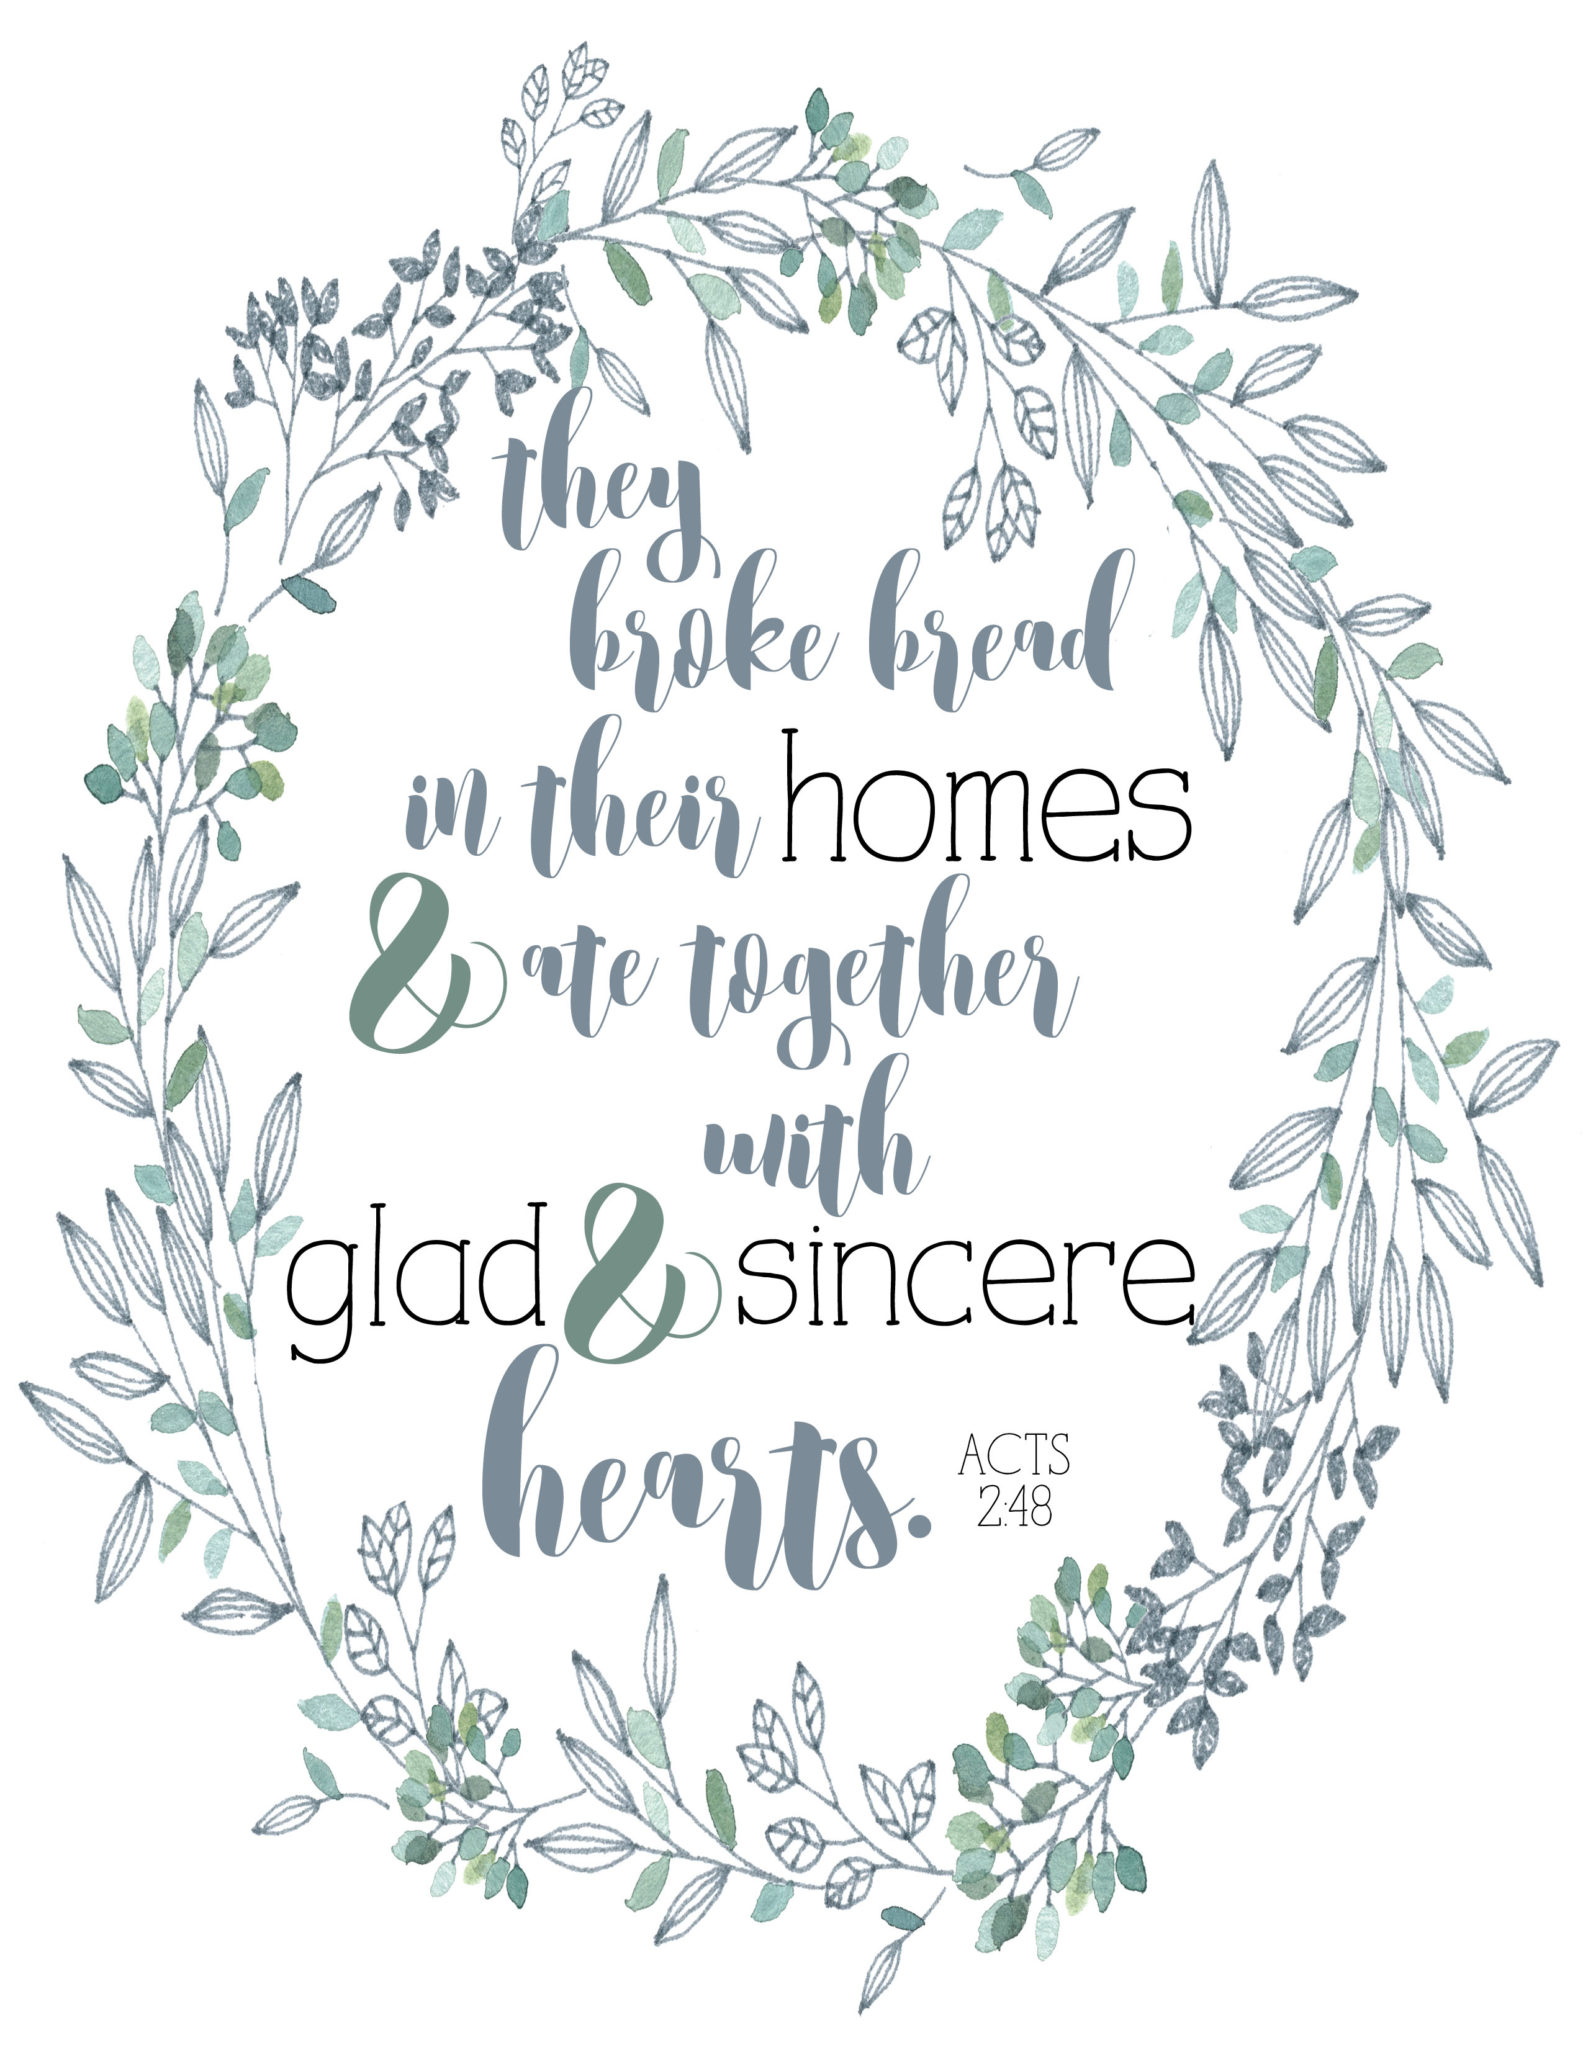 Pantry Organization moreover Cupcake Liner Crafts likewise 171629435769034185 also 203230320 besides Hospitality Free Printable Bible Verse Art. on craft room organization ideas